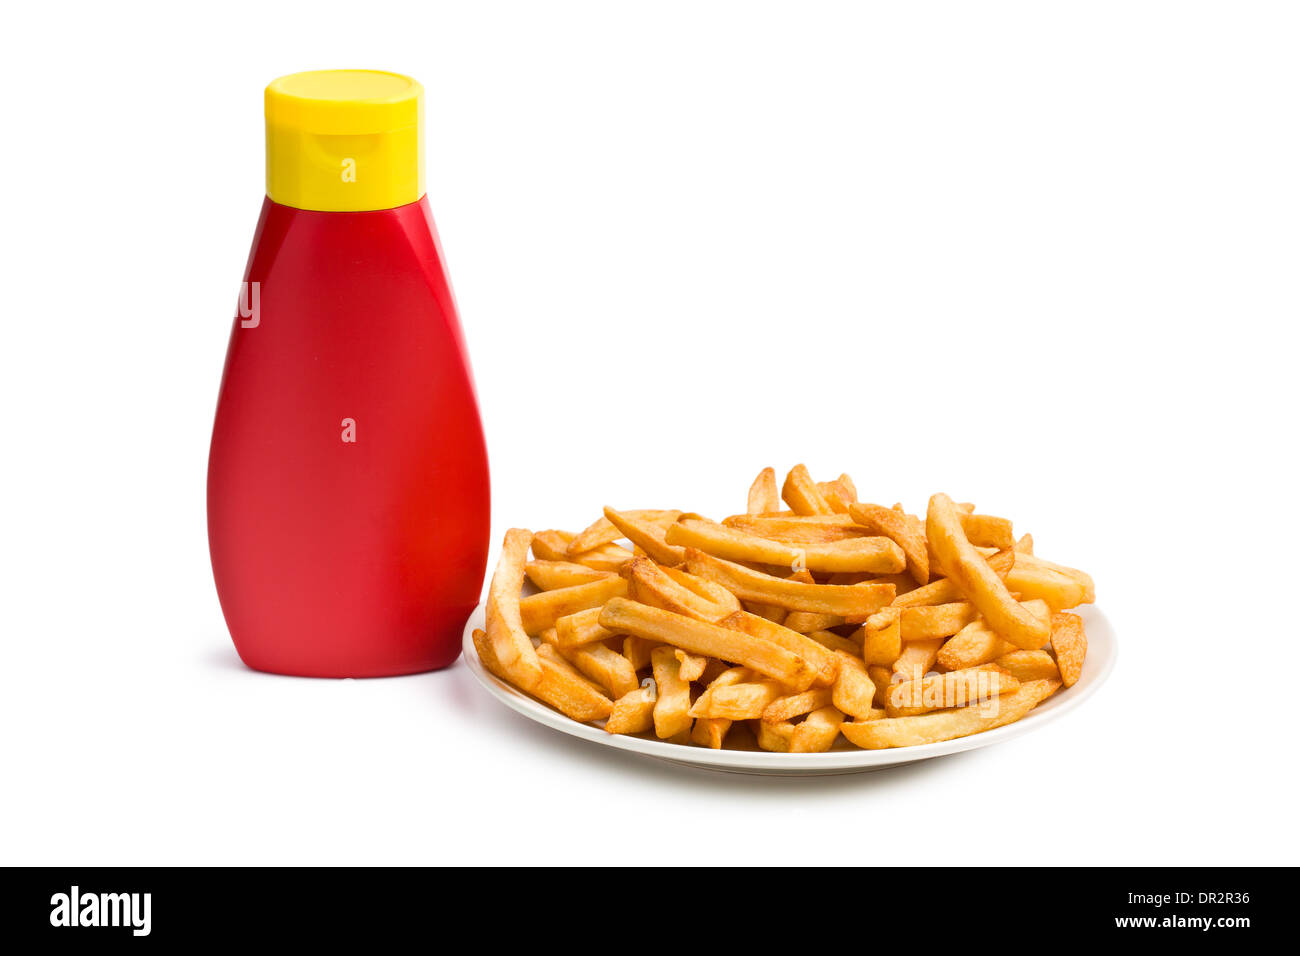 french fries with bottle of ketchup on white background - Stock Image